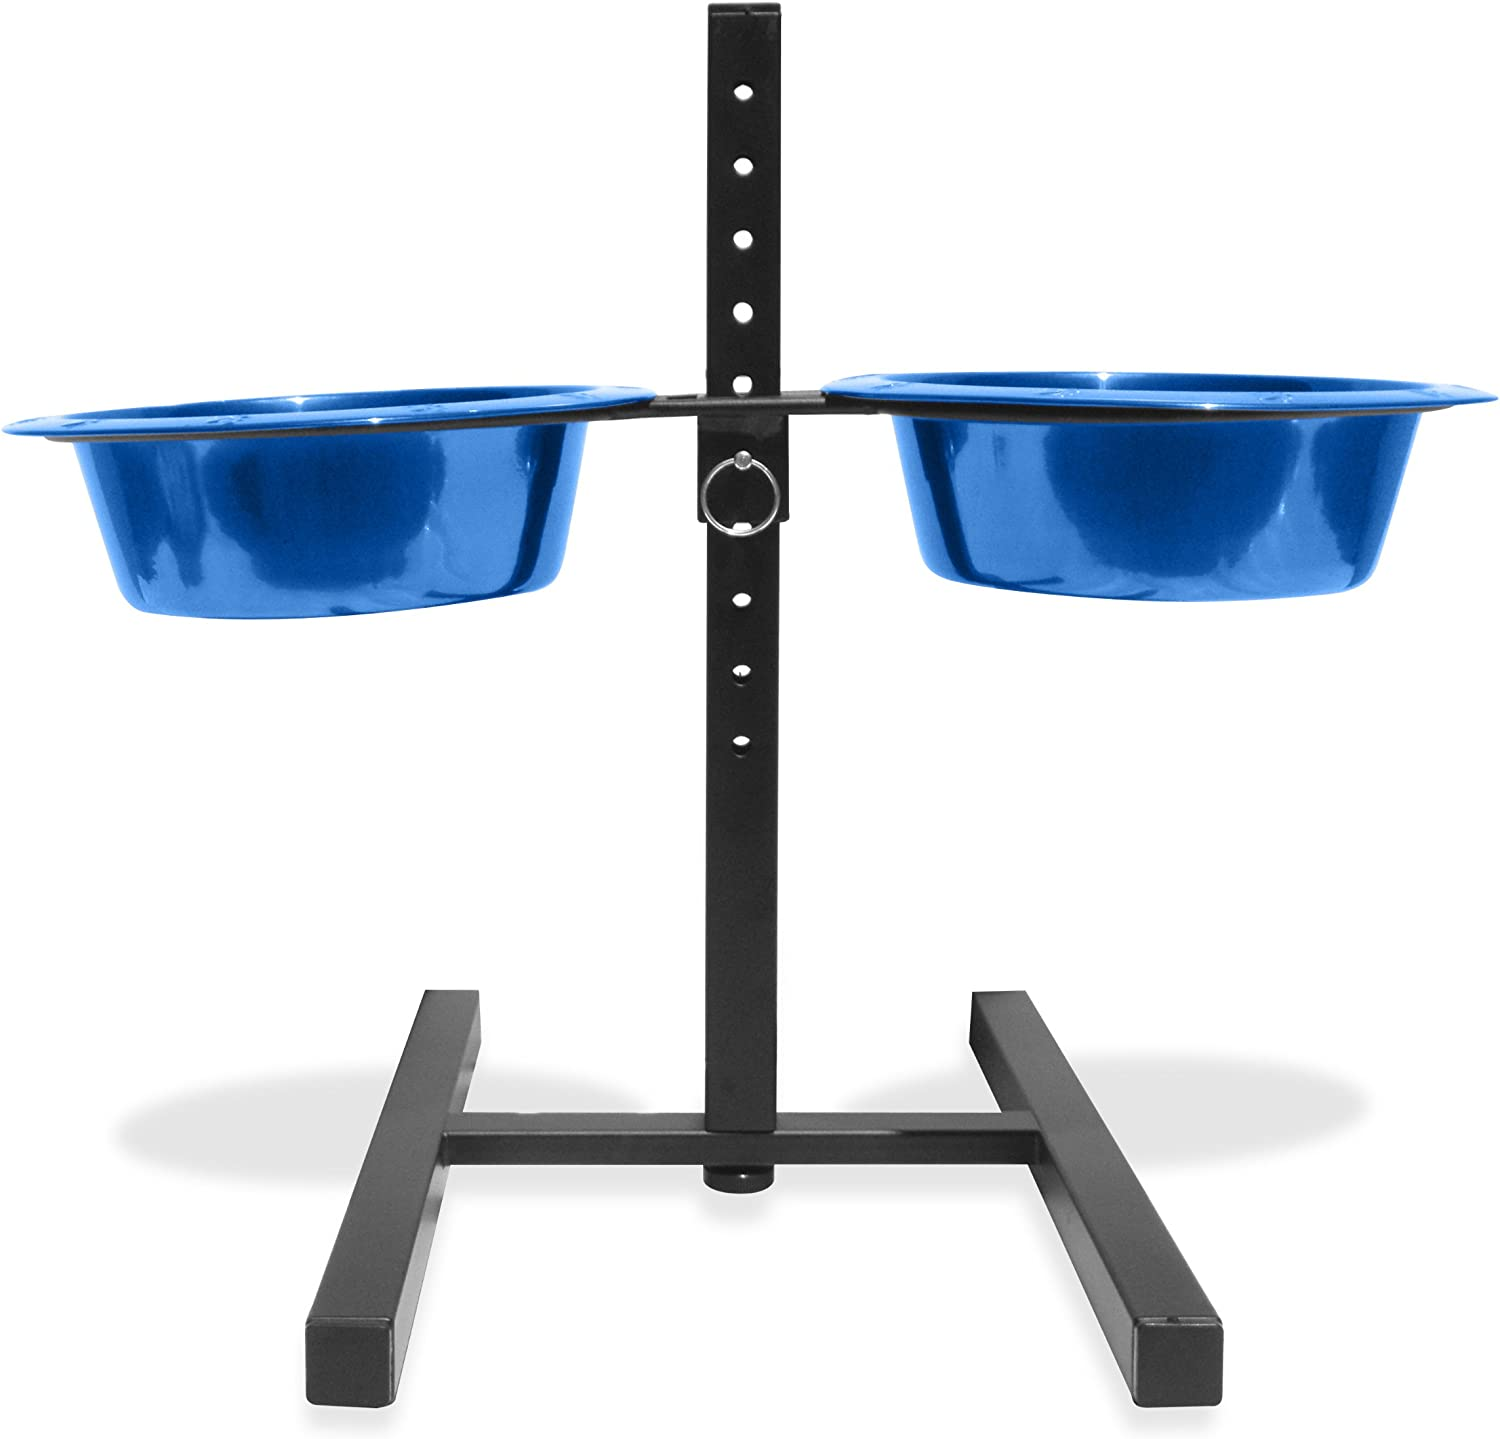 Platinum Pets 4 Cup Adjustable Raised Feeder Stand with two Sapphire bluee Bowls